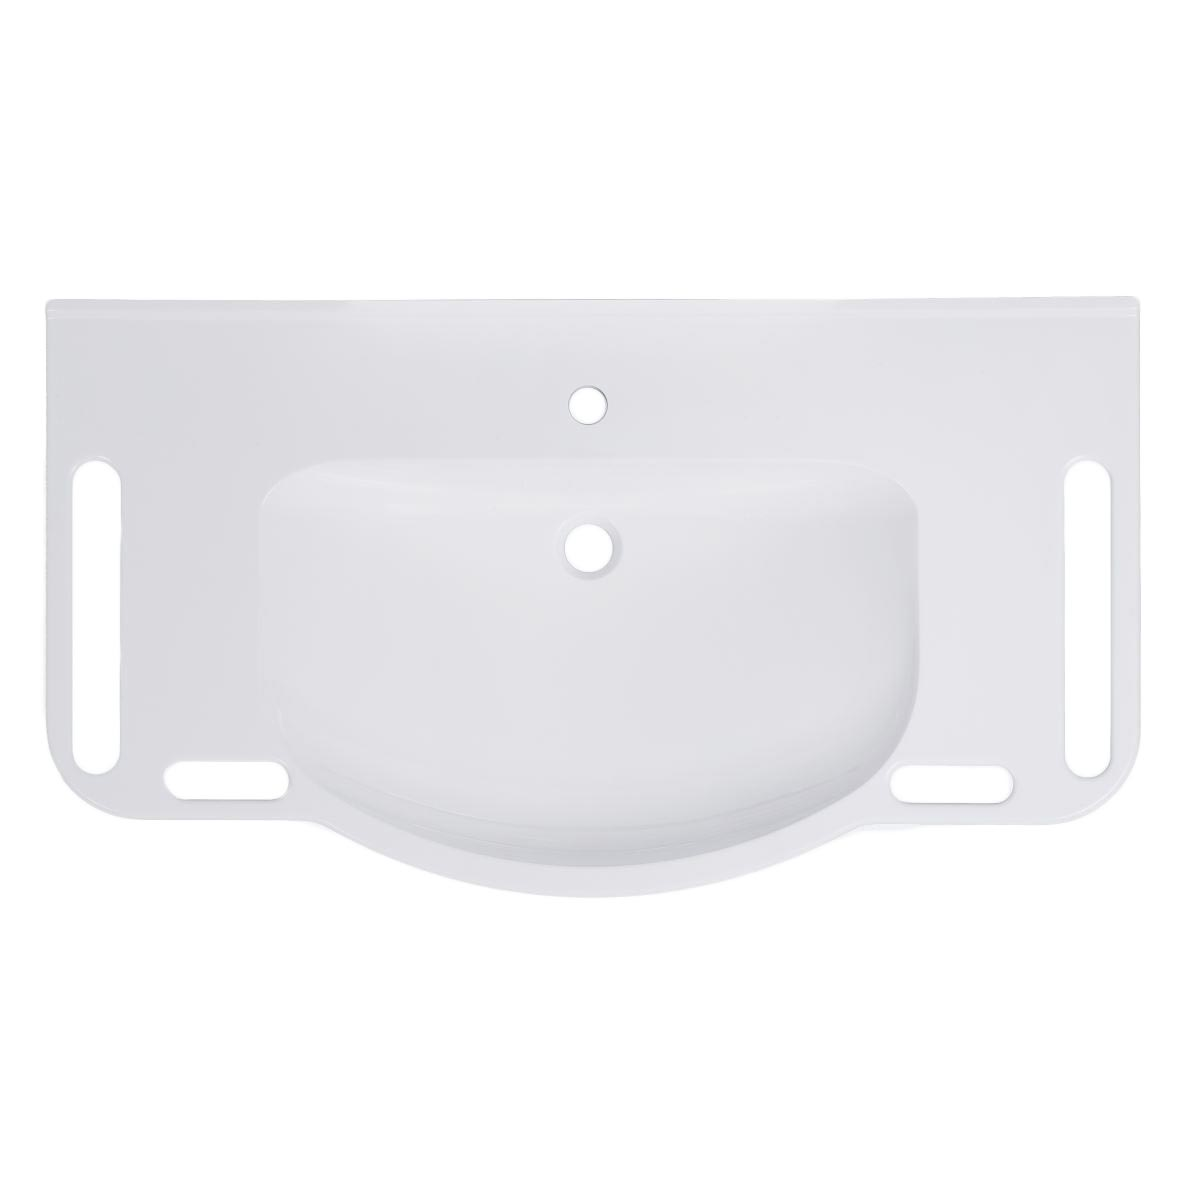 Article number WBM-1002-1 without overflow / with tap hole, top view